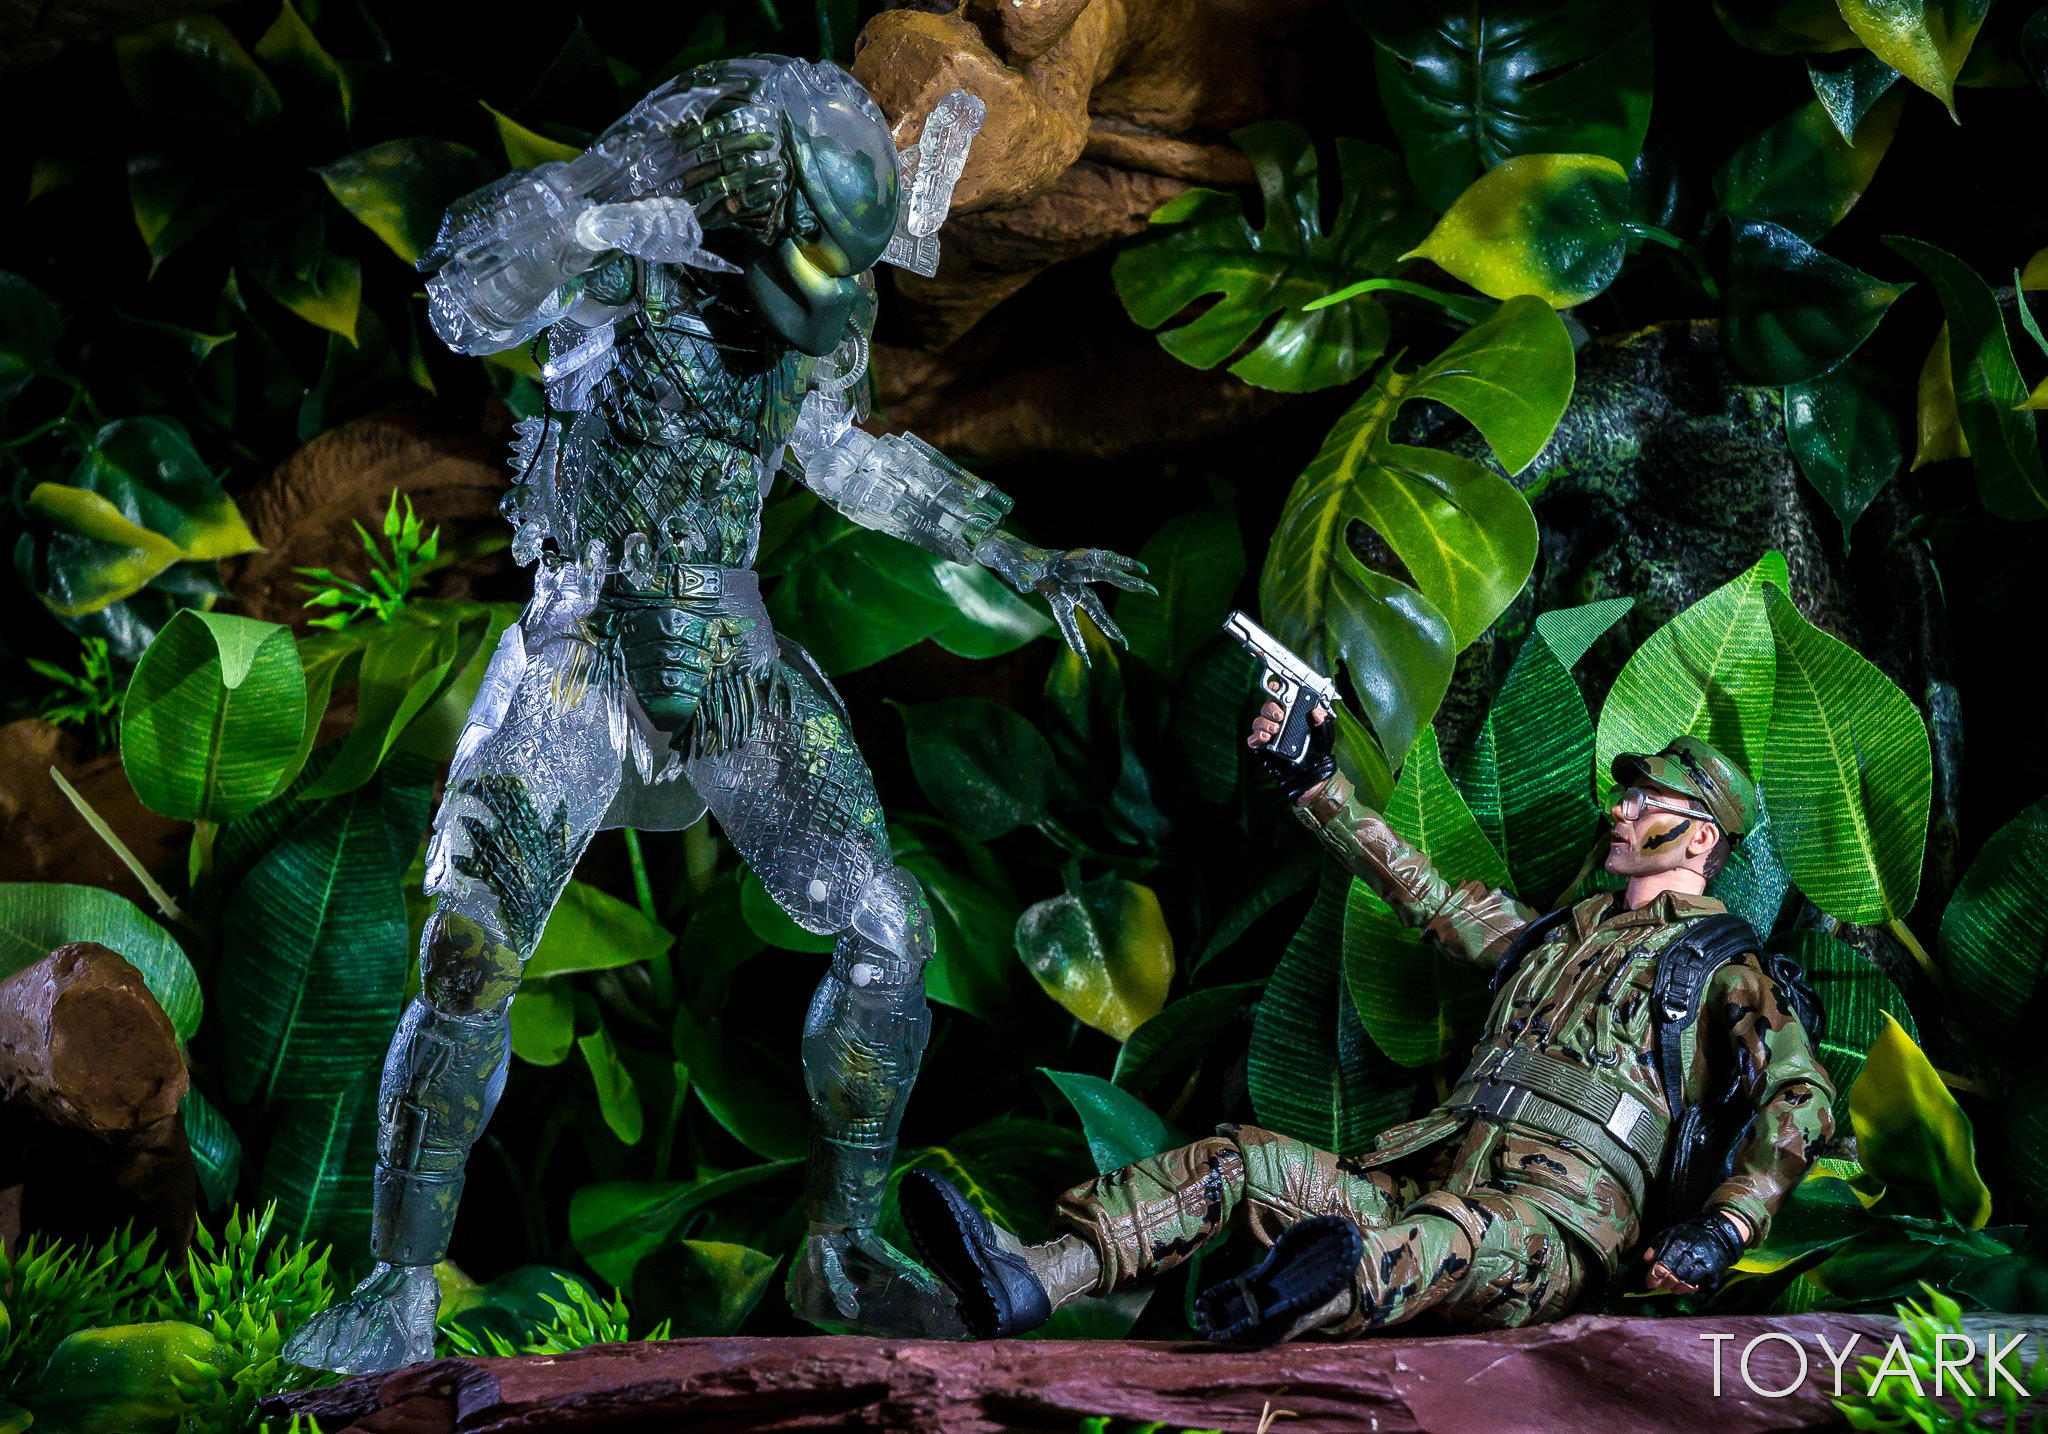 https://news.toyark.com/wp-content/uploads/sites/4/2018/07/NECA-SDCC2018-Predator-Hawkins-039.jpg